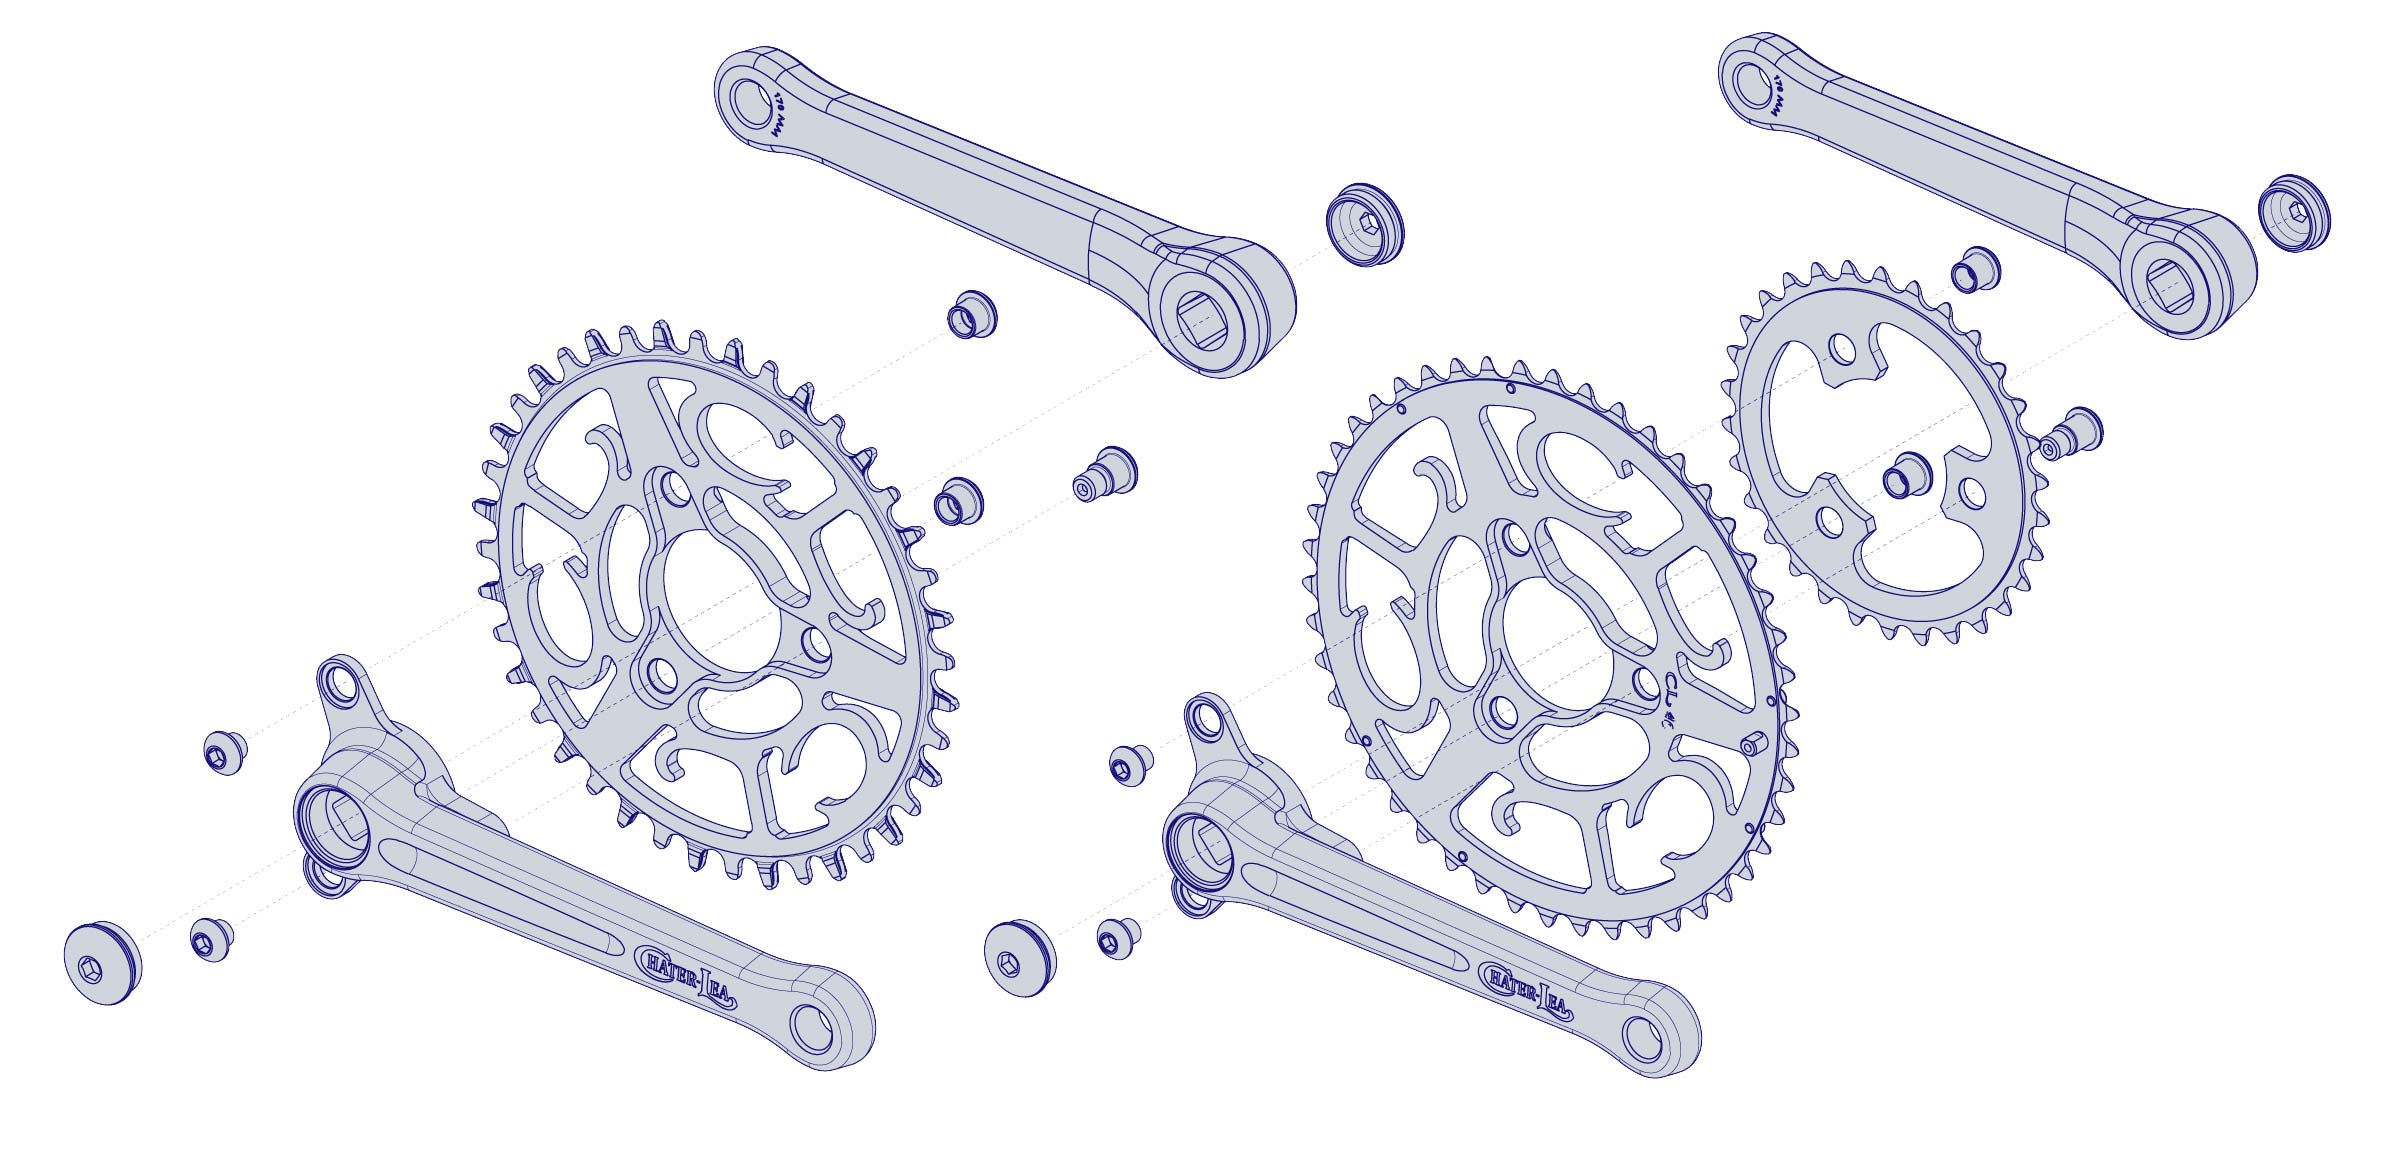 Chater-Lea Grand Tour Crankset, classic British road bike style, modern detail materials, UK-made alloy square taper all-road gravel 1x sub-compact road cranks